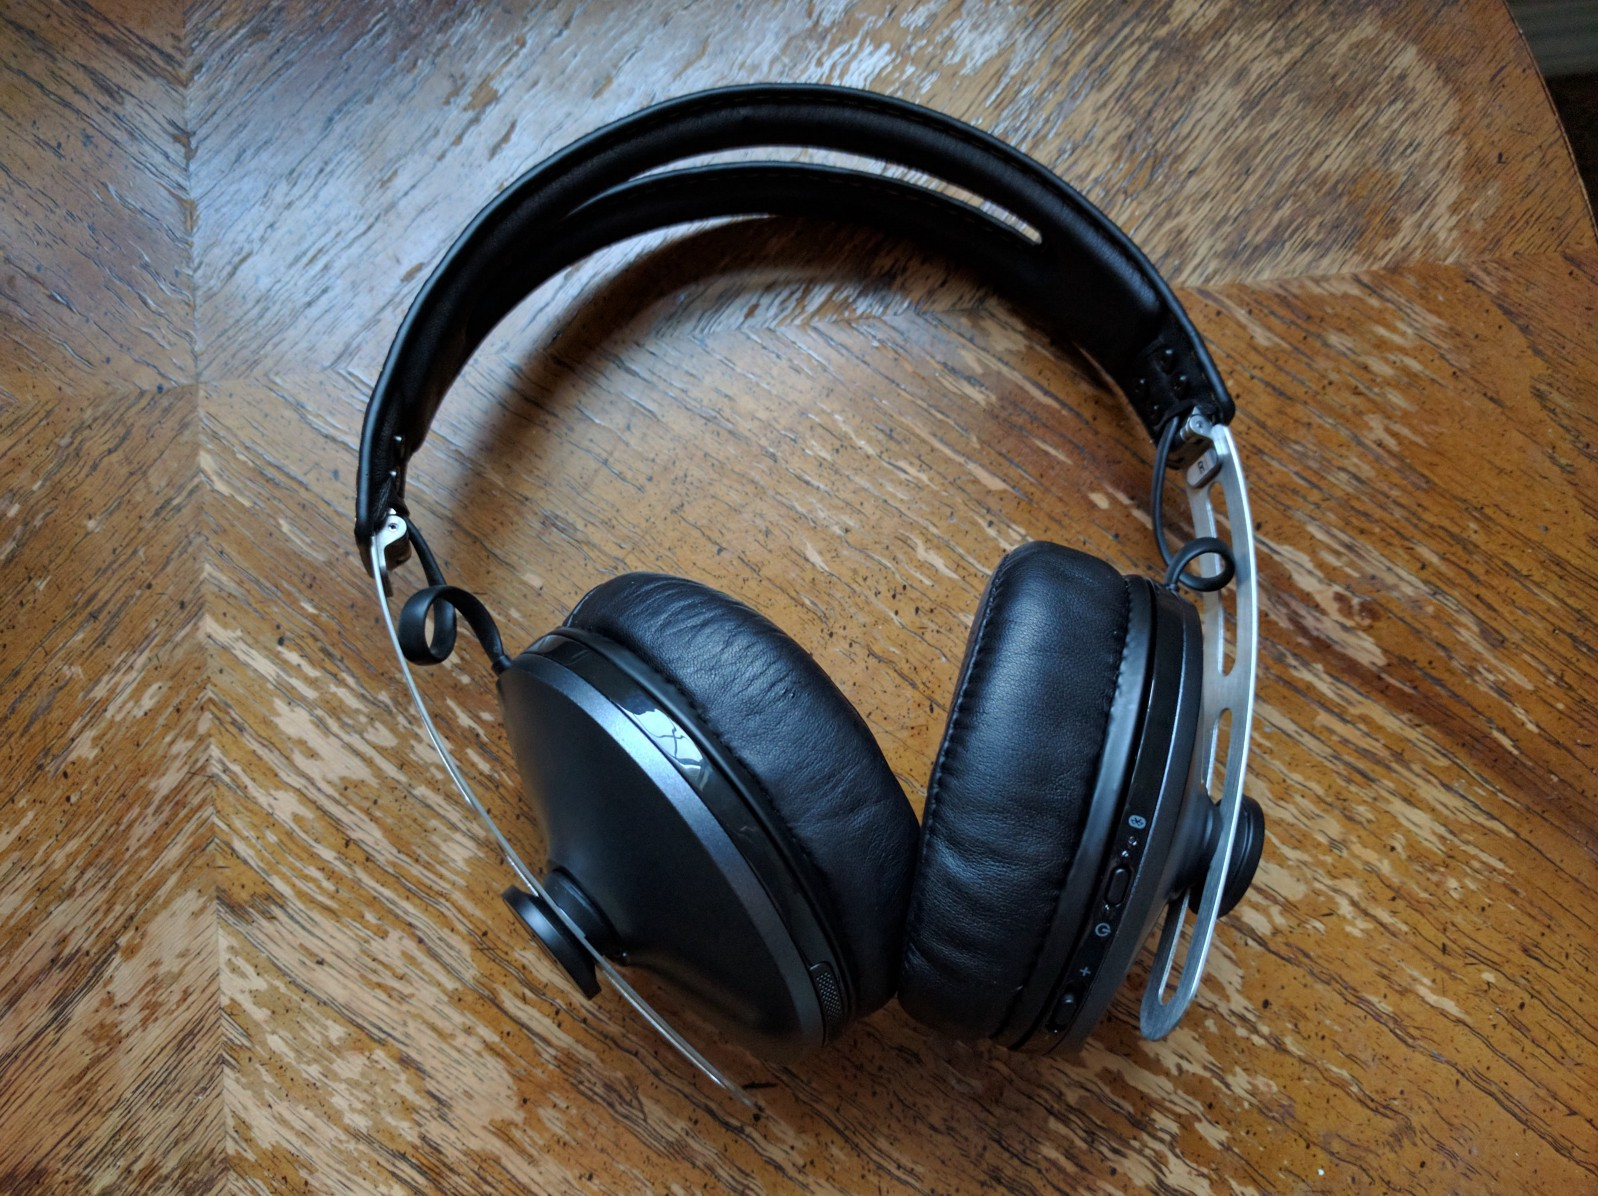 Sennheiser Momentum Wireless Headphones Review Tom Westrick Medium Headphone Sony Mdr100abn Bluetooth Noise Cancelling My Great Test Of 2016 Involves A Few Devices I Have The Bose Qc 35s And That Im Looking